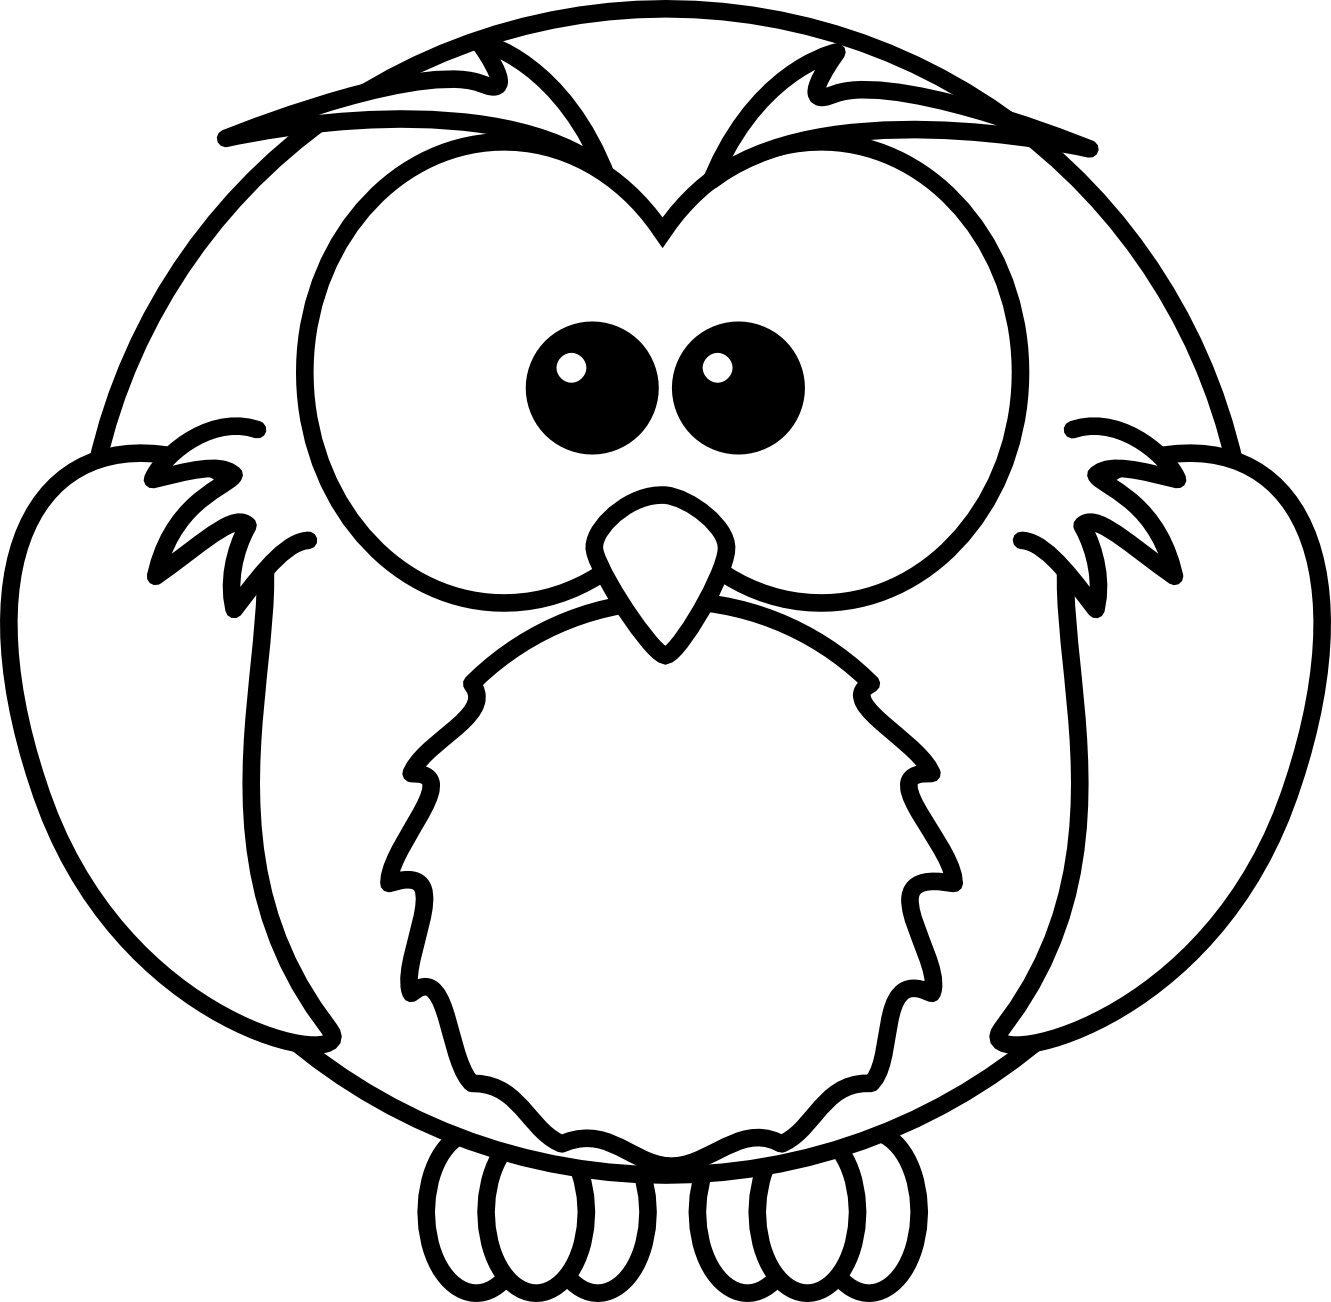 1331x1302 Animal Clipart Black And White